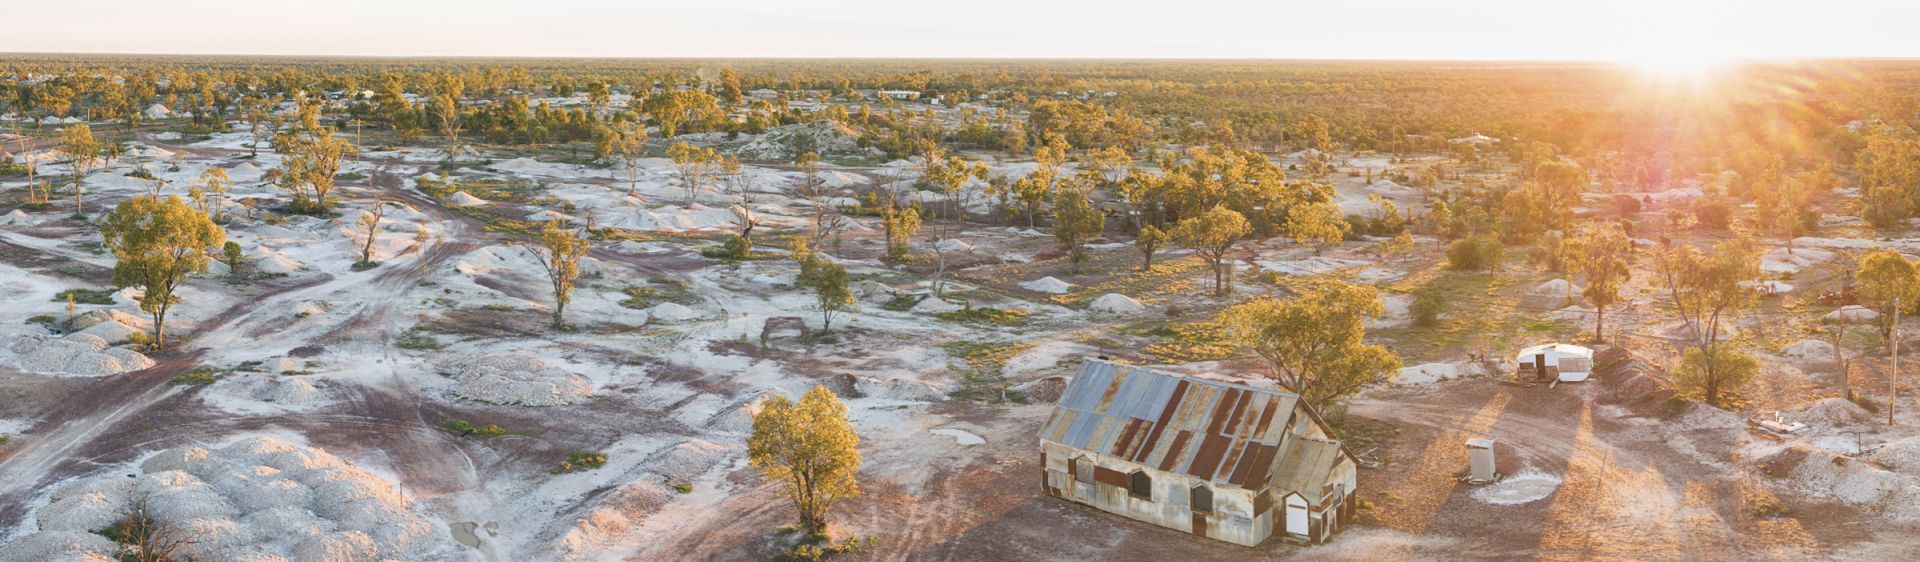 'The Goddess of 1967' Church - Lightning Ridge